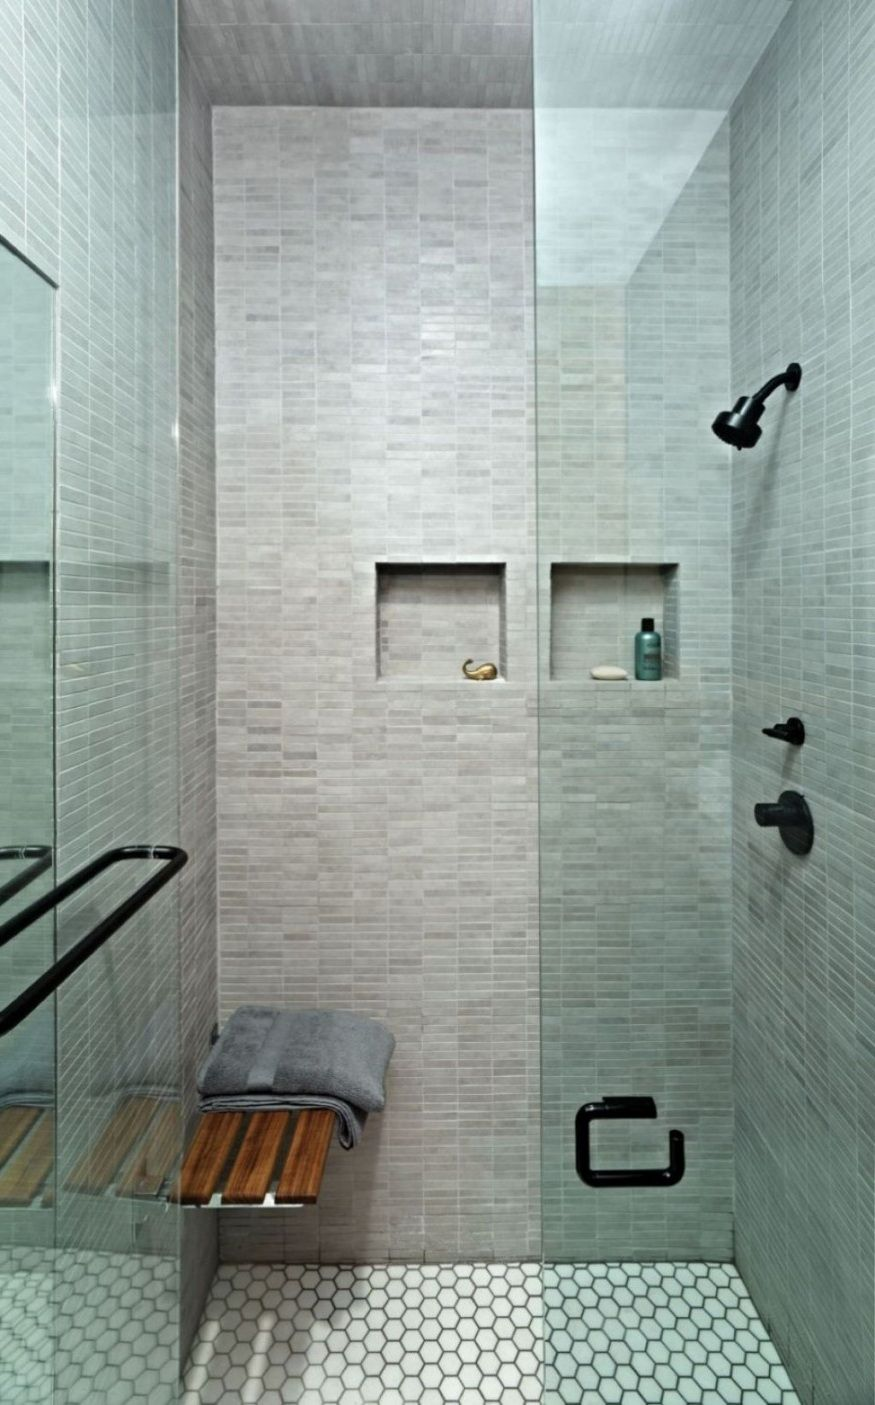 Awesome Stand Up Shower Modern Small Bathrooms Small Bathroom Remodel Bathroom Interior